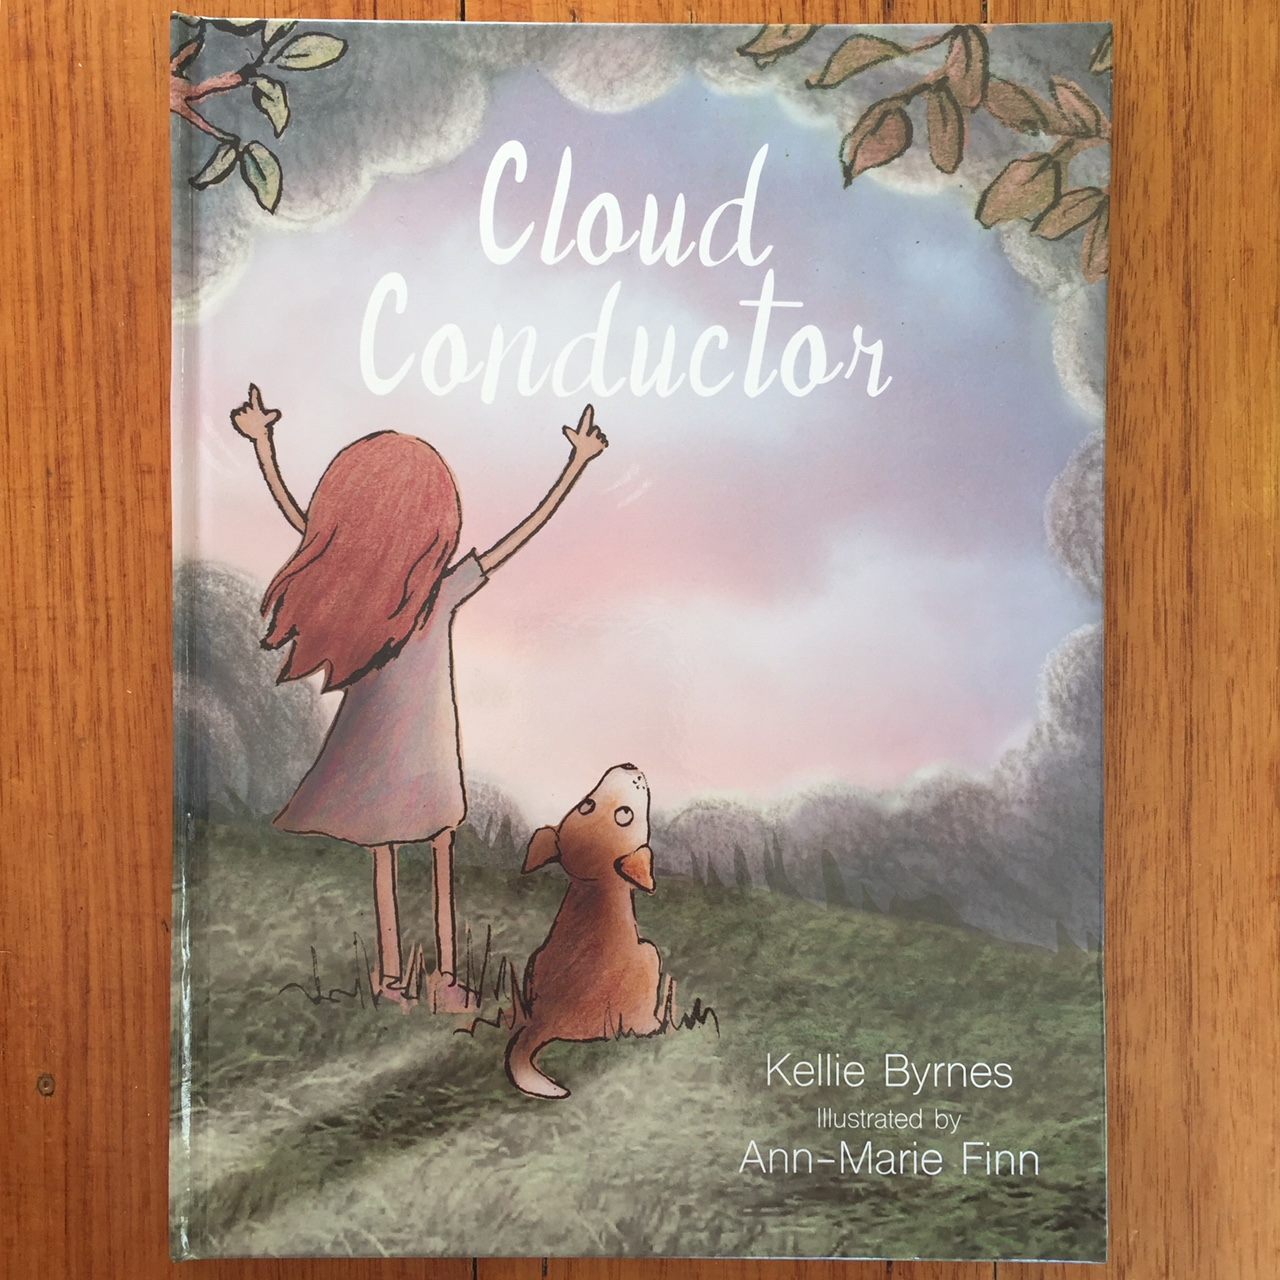 Review - Cloud Conductor